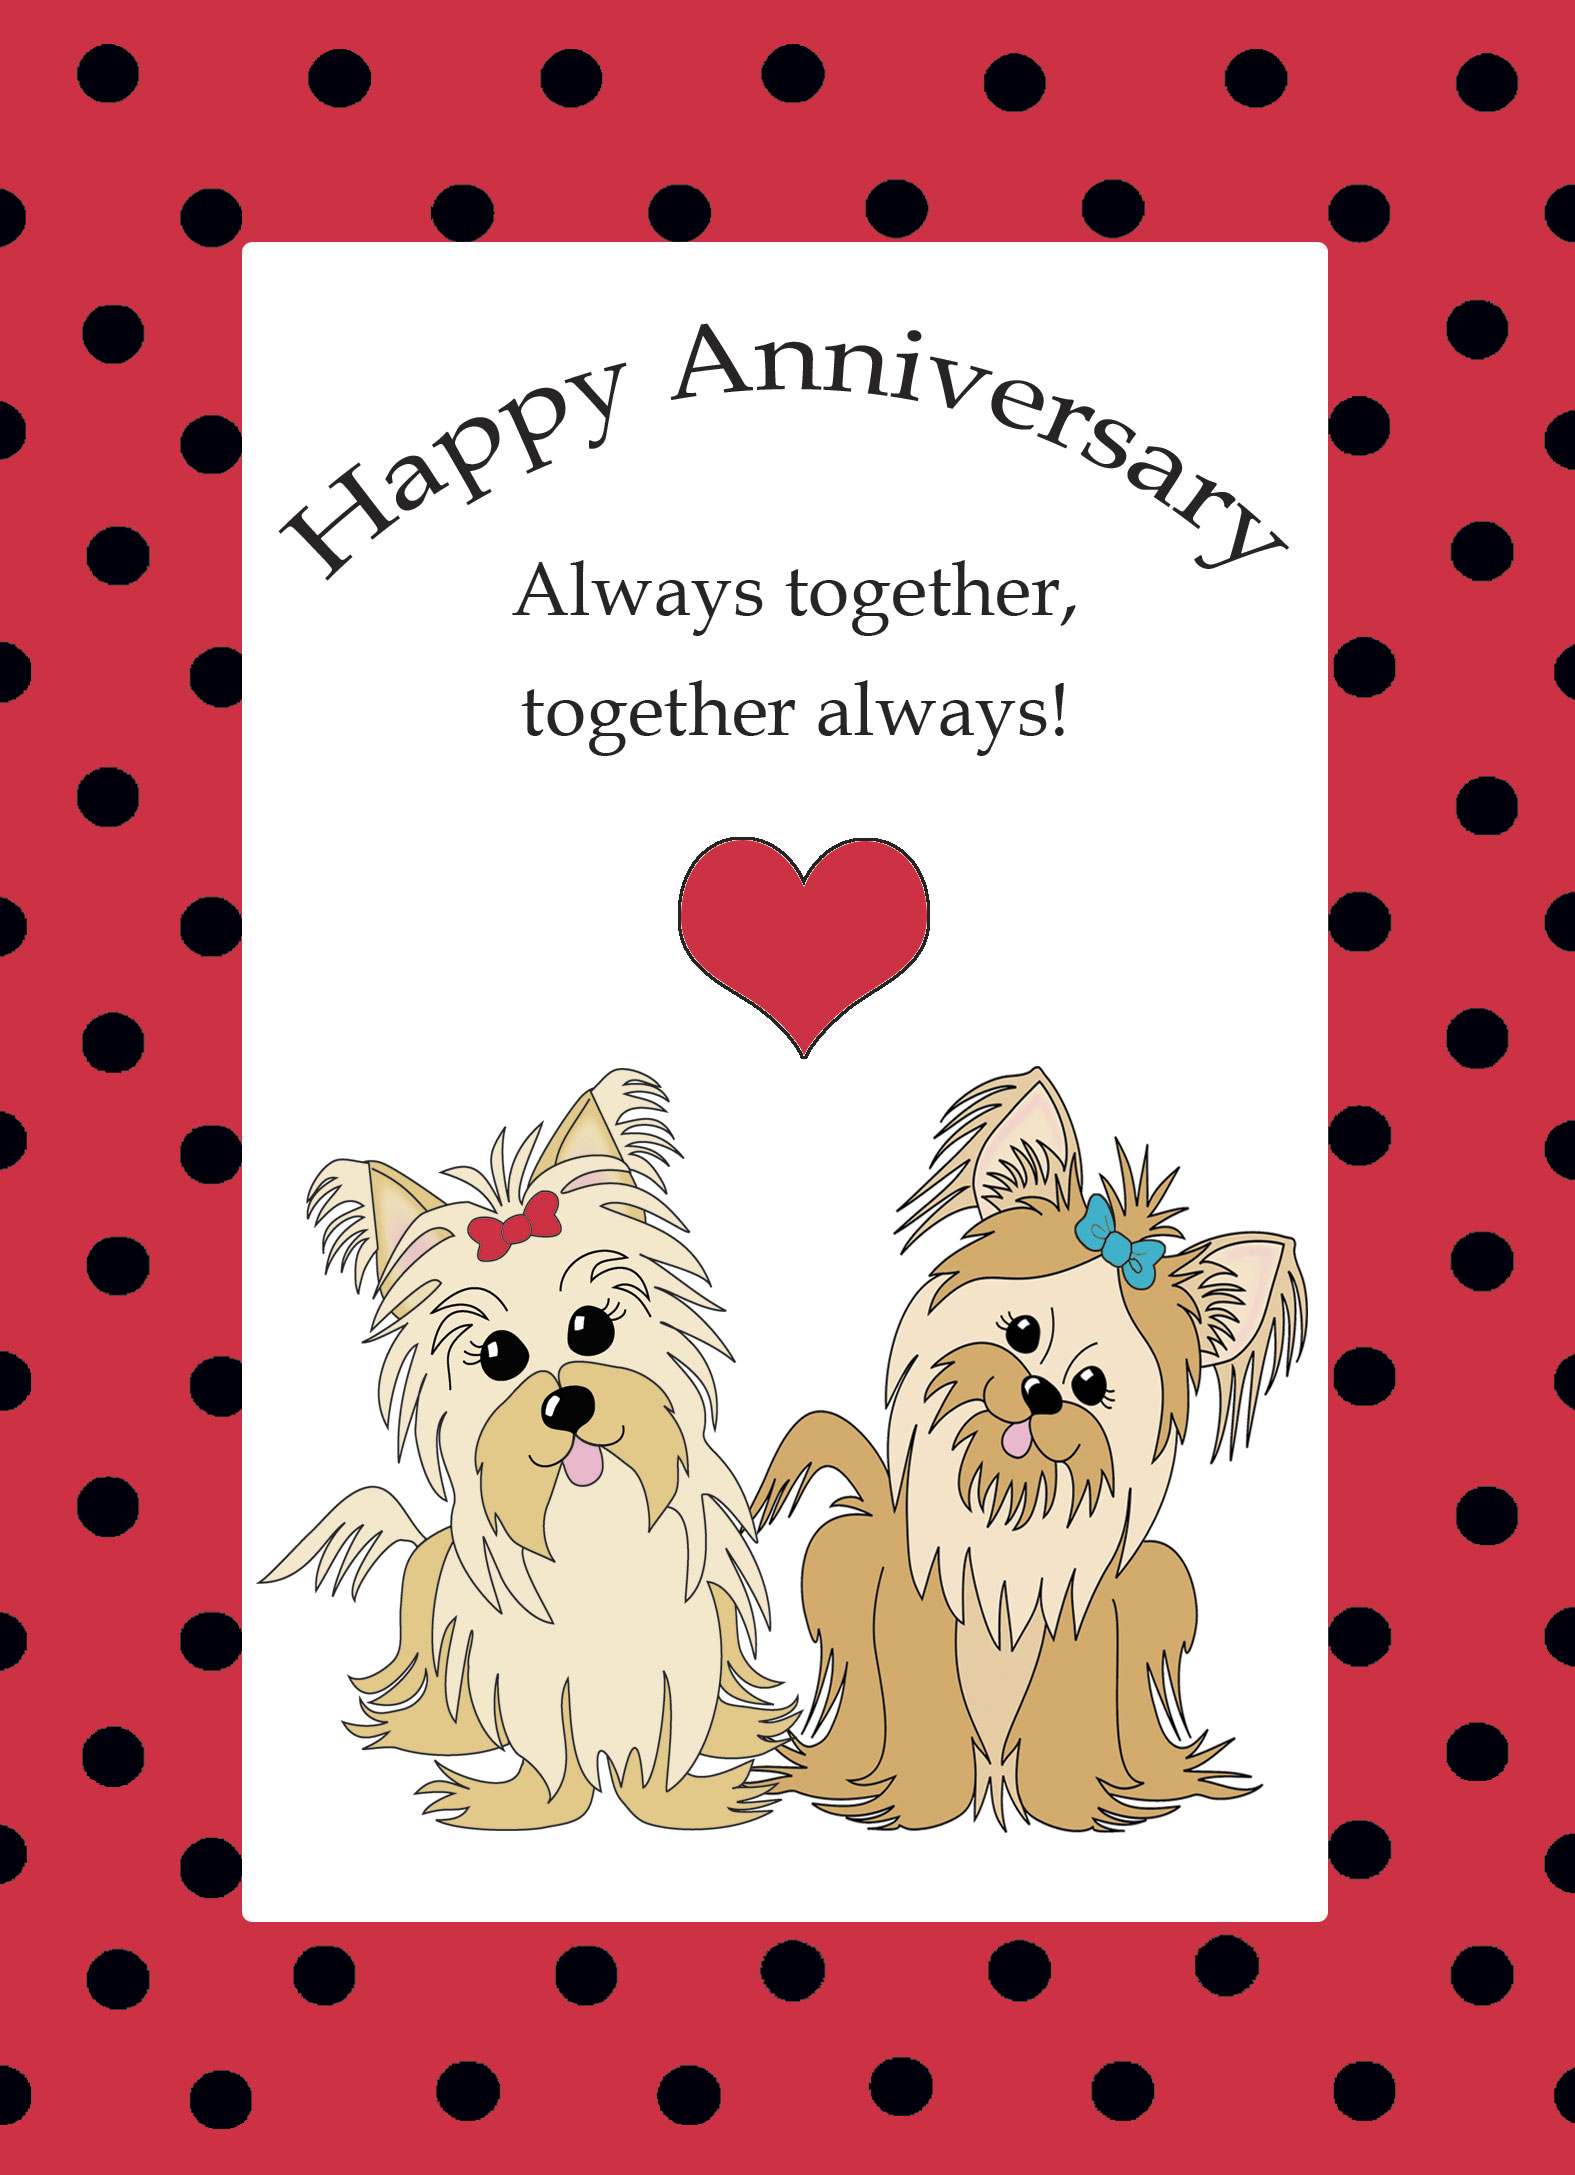 Best images of printable anniversary cards online free